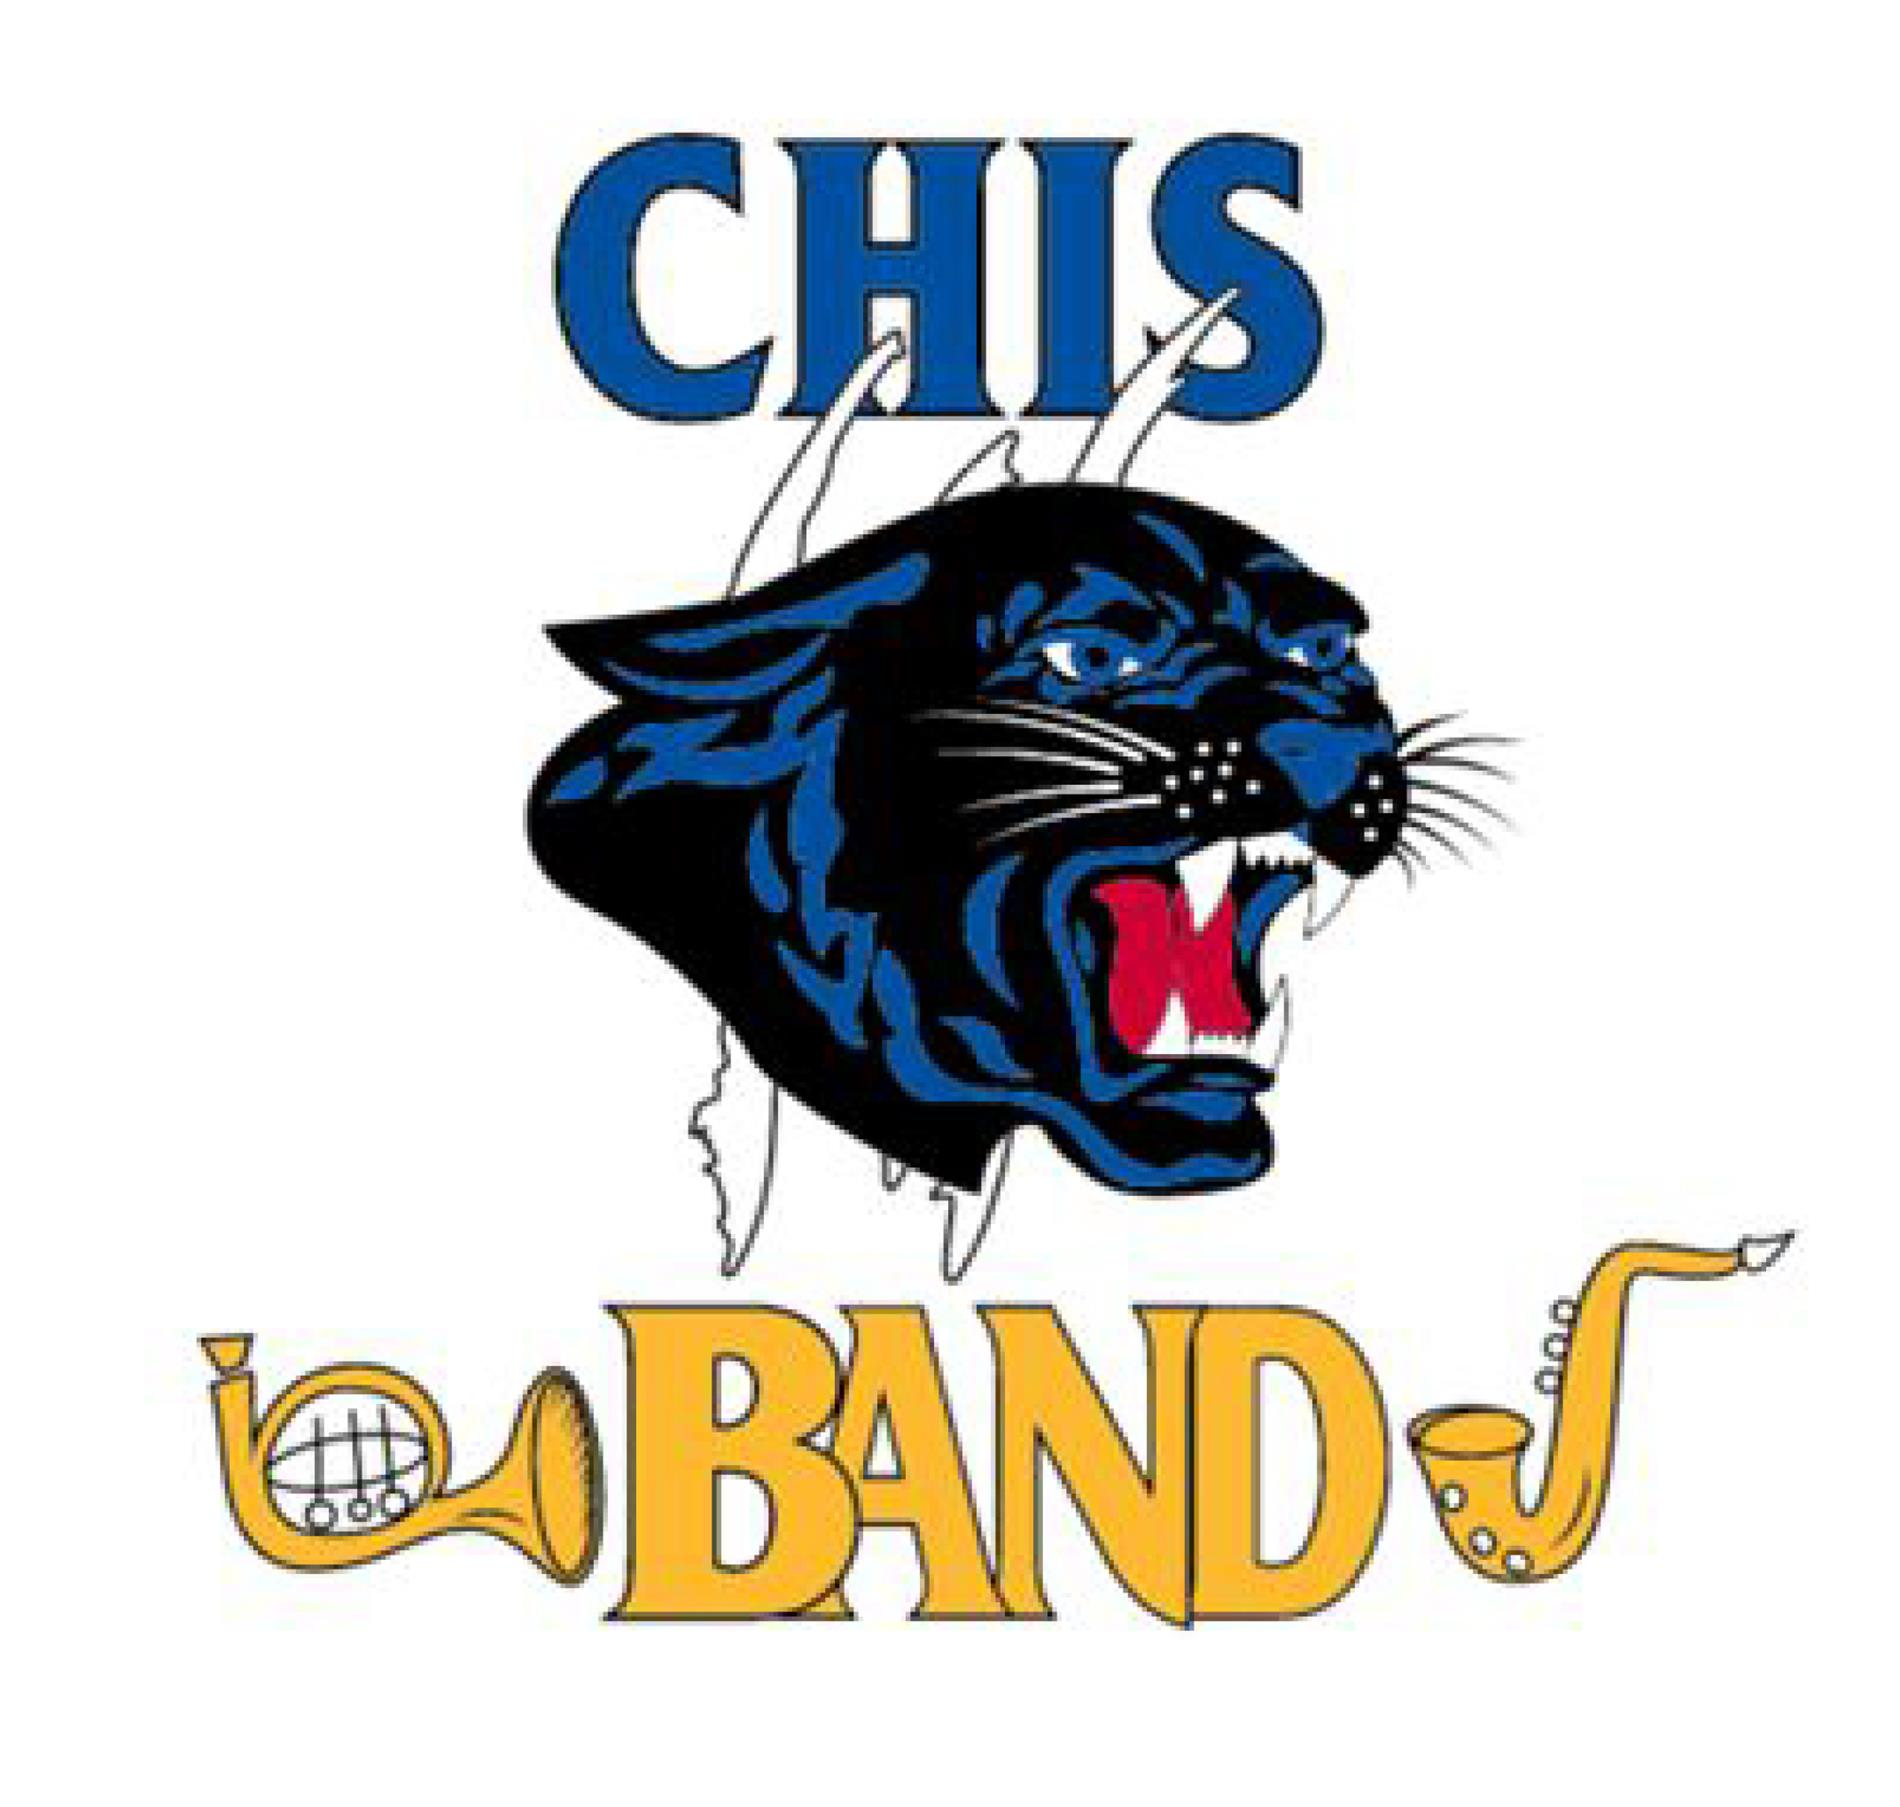 CHIS Band